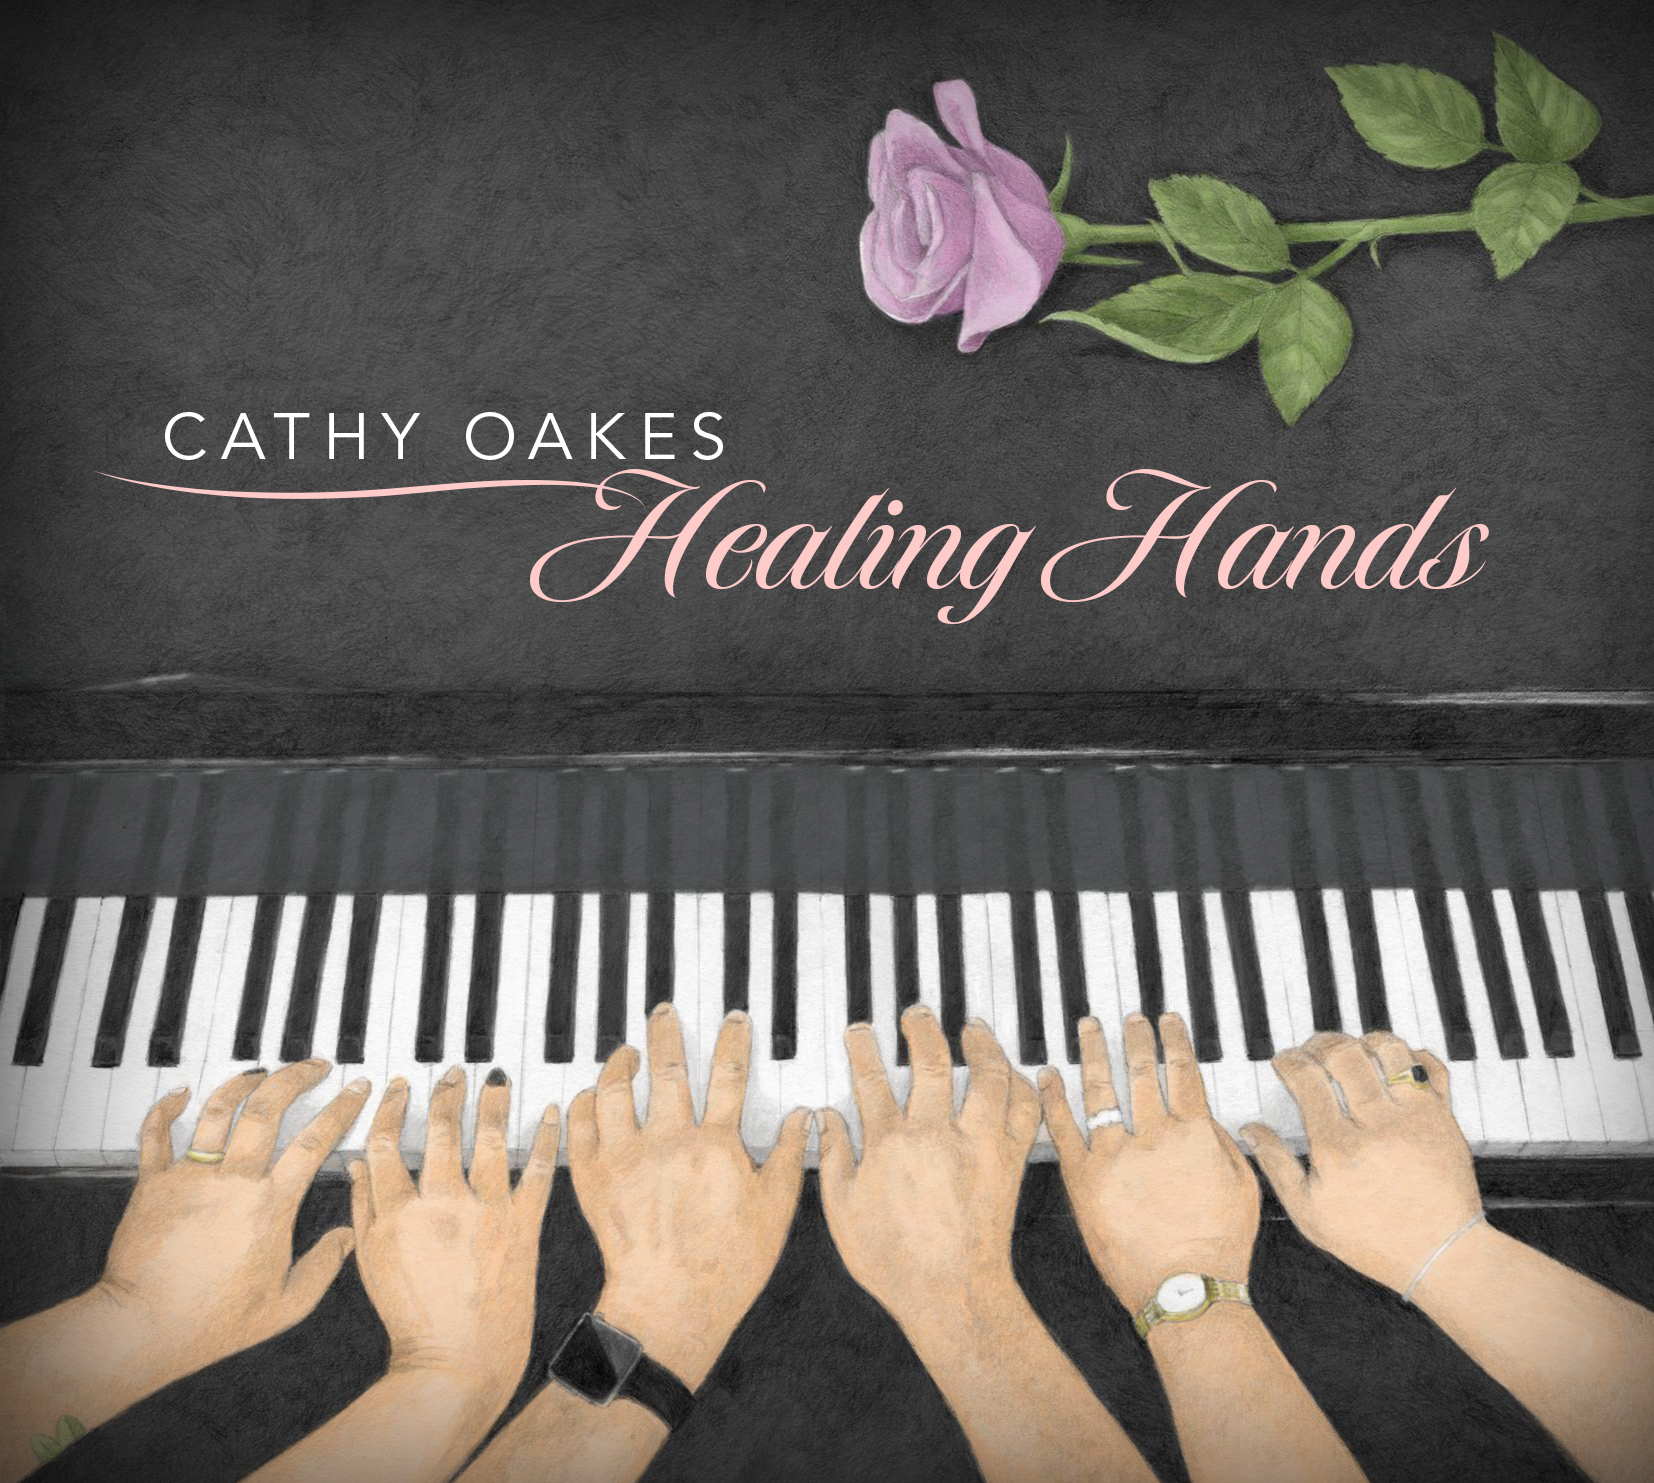 Healing Hands - Cathy Oakes